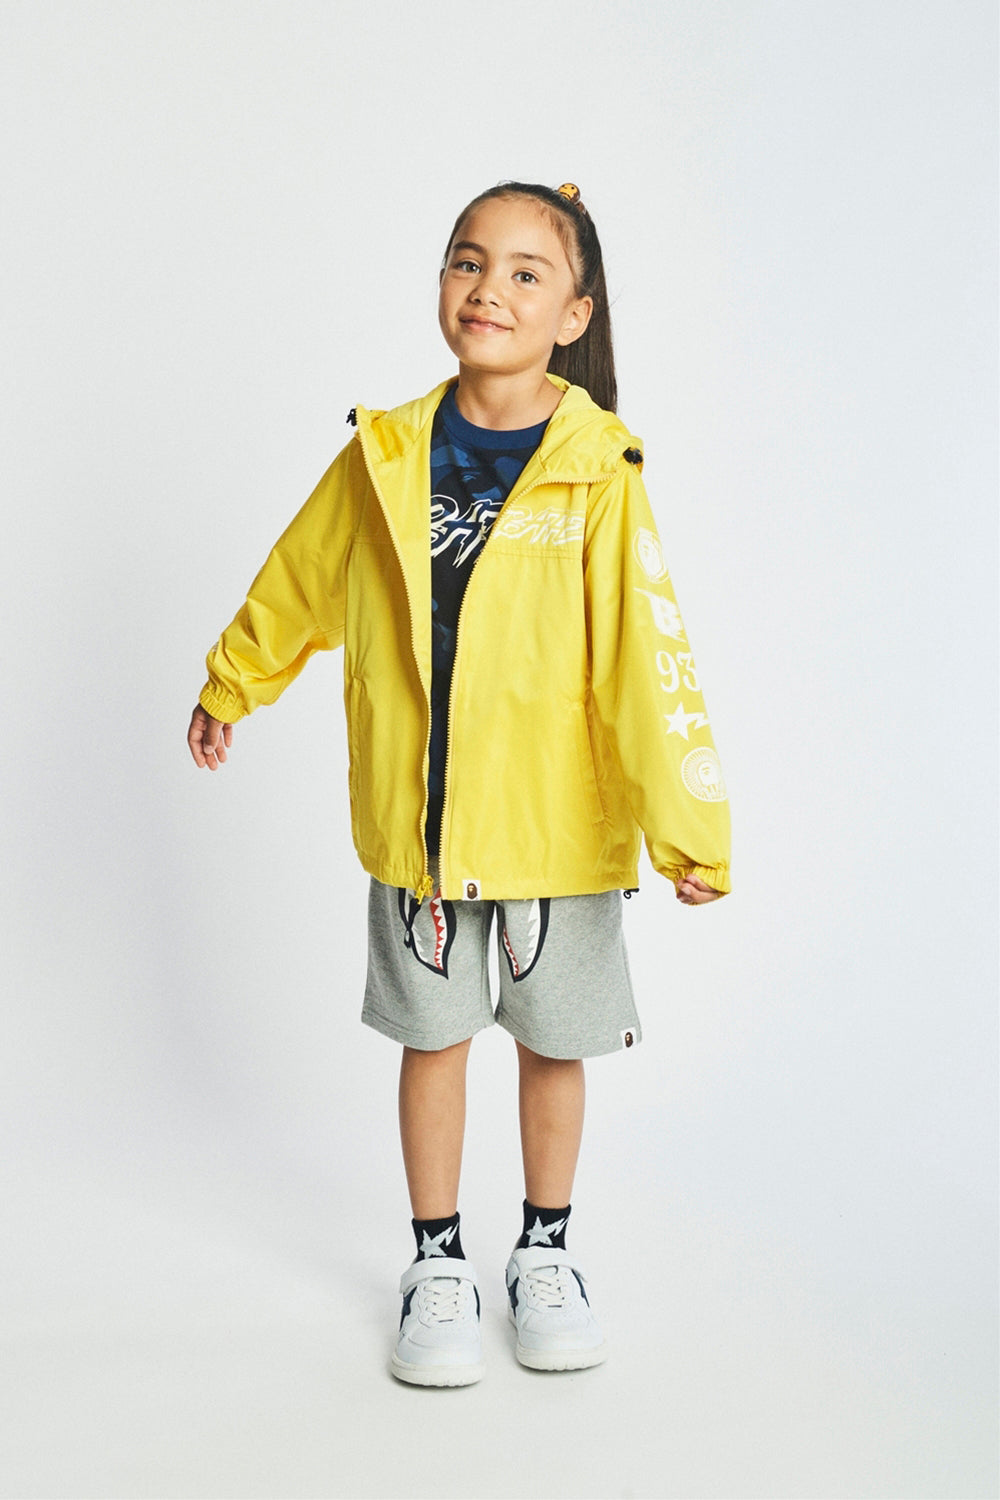 A BATHING APE 2019 AW KIDS' LOOKBOOK 02